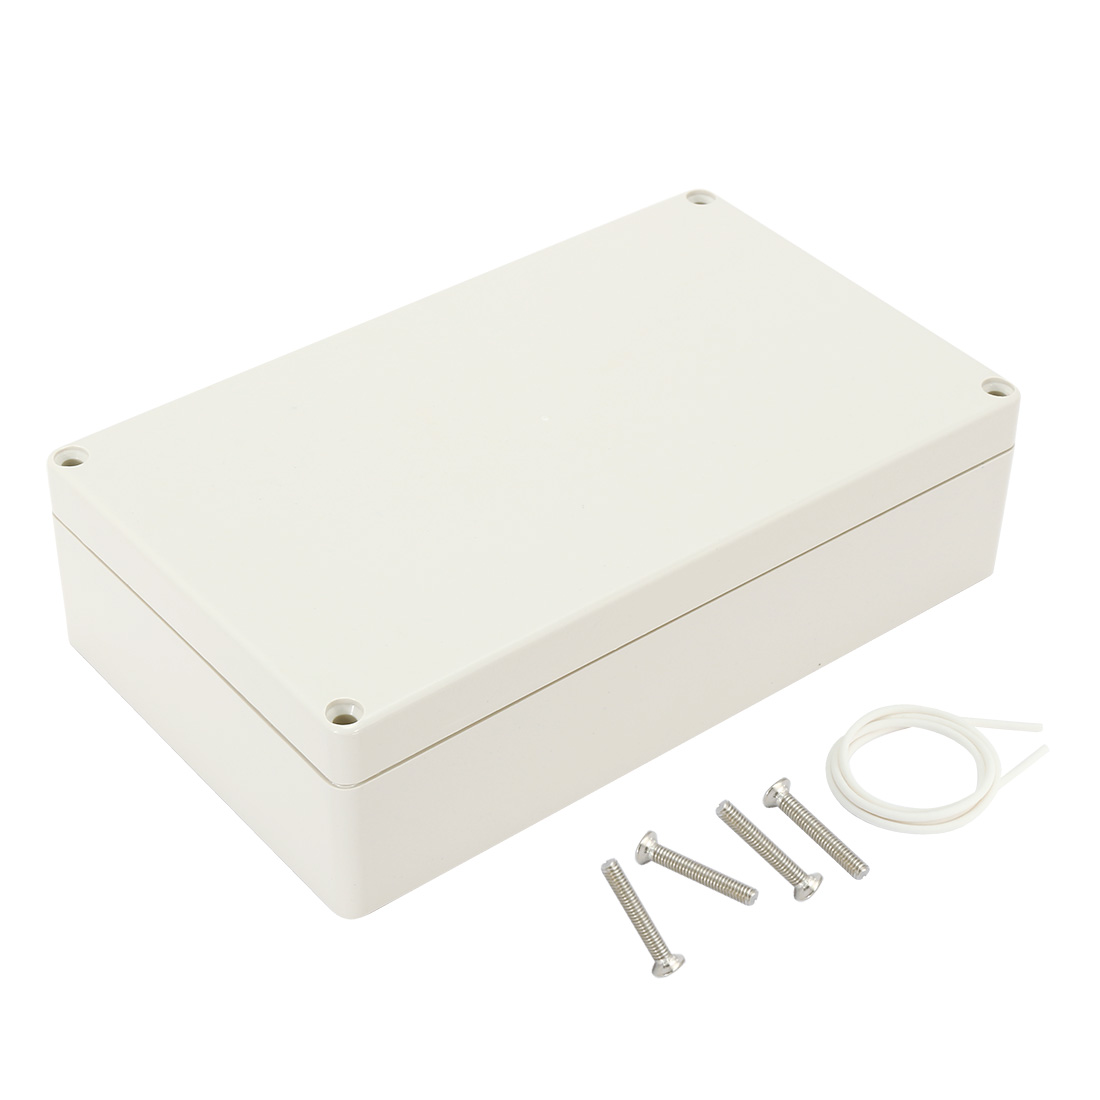 "7.9""x4.7""x2.2""(200mmx120mmx56mm) ABS Junction Box Universal Electric Project Enclosure"